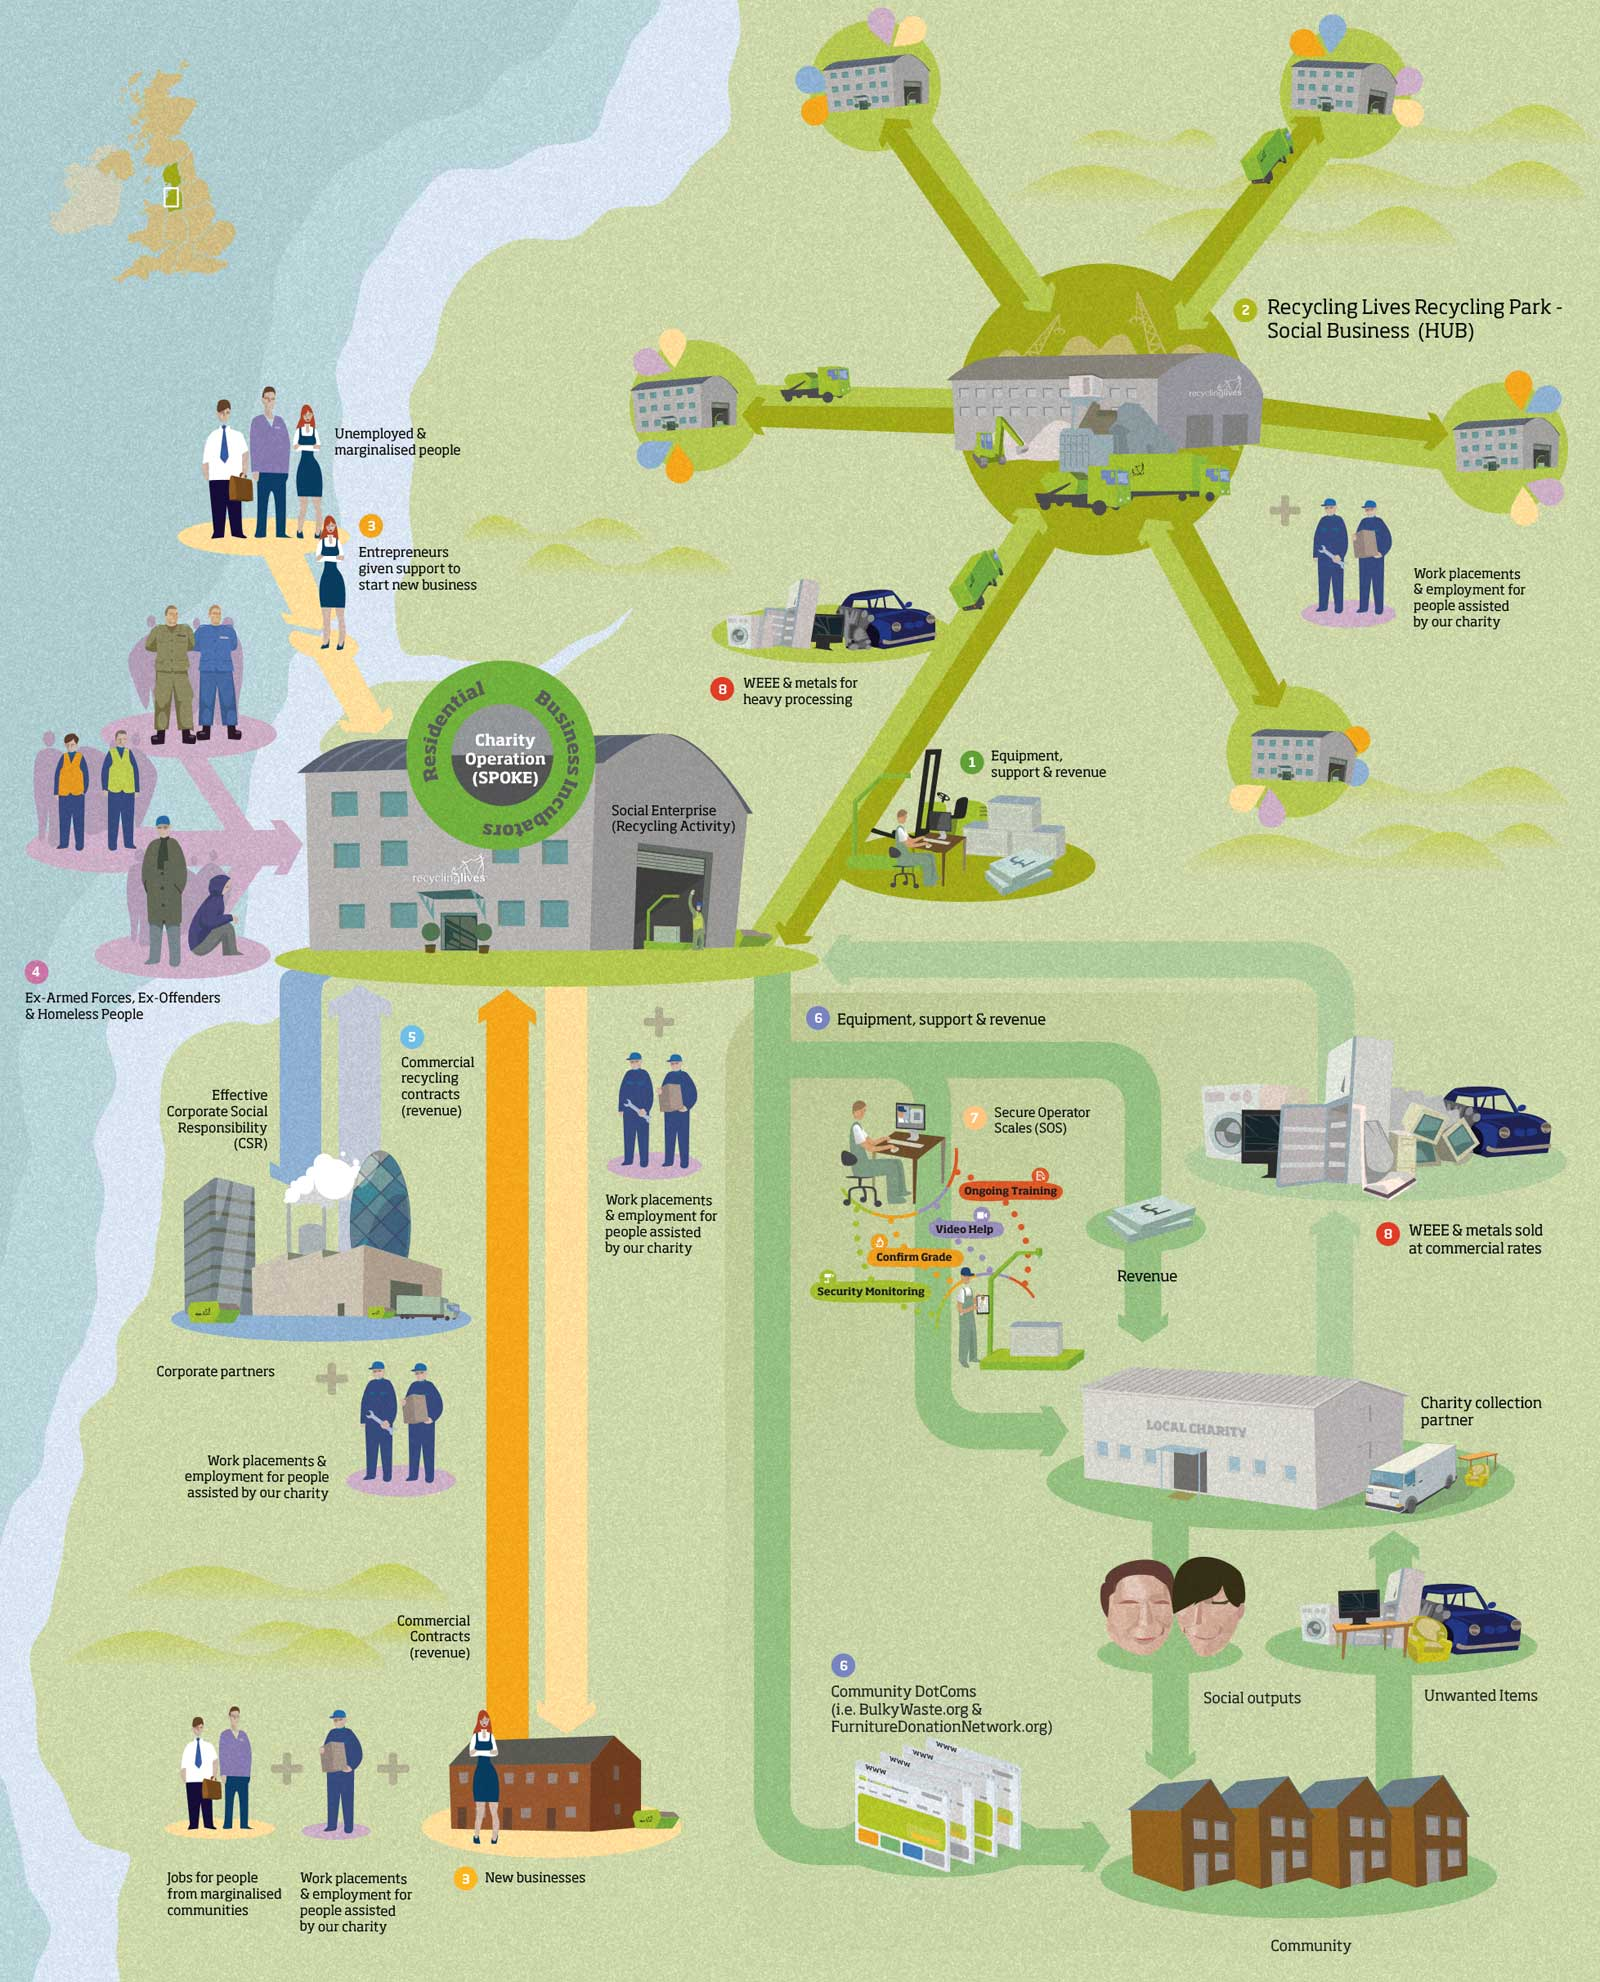 Recycling Lives community integration and SOS diagram